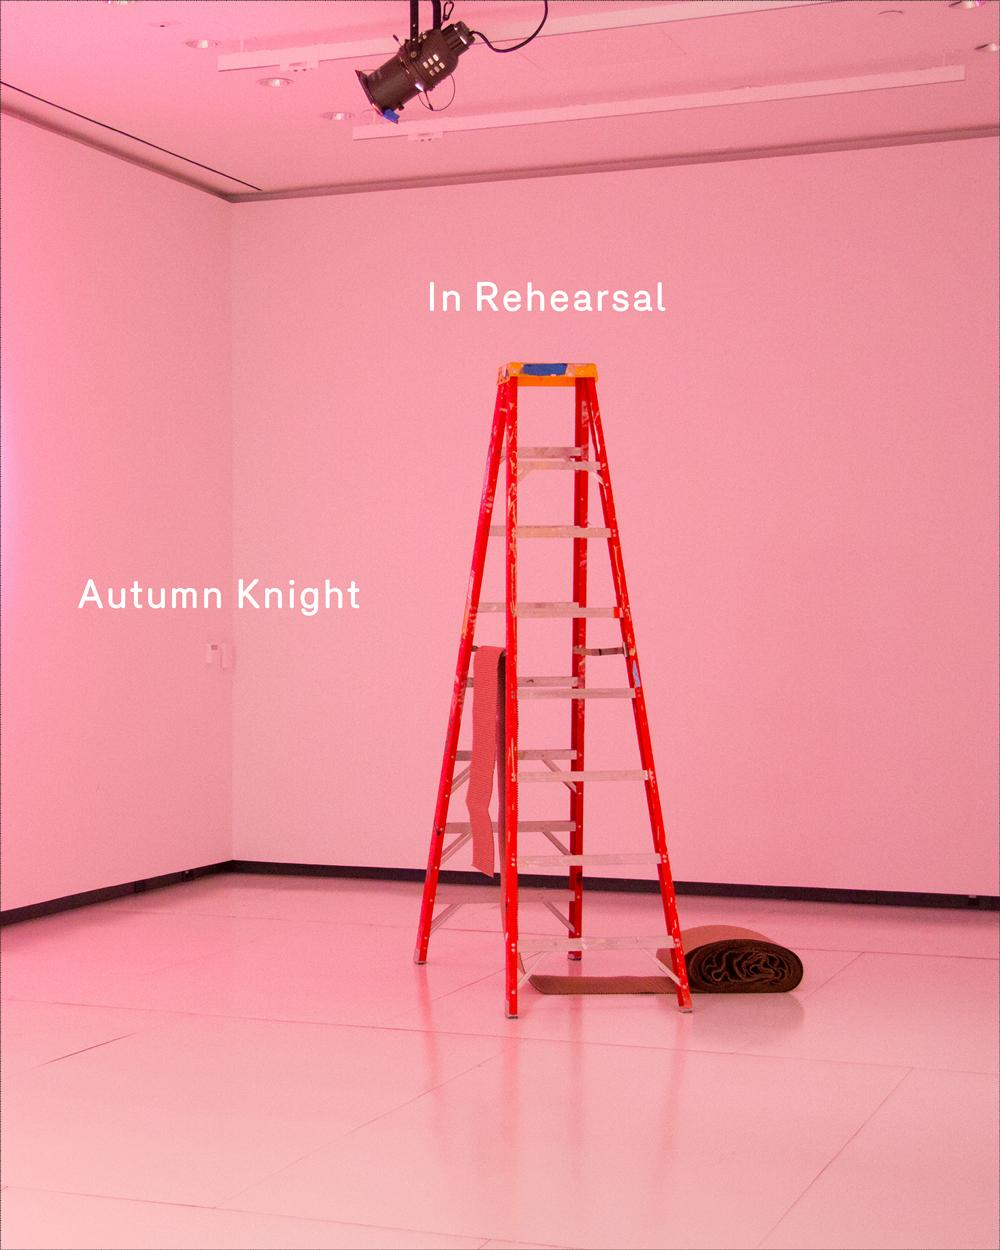 Autumn Knight: In Rehearsal, 2019. Published by Krannert Art Museum/Project Row Houses. Distributed by ARTBOOK | DAP.  Text by Ryan N. Dennis, Jennifer Doyle, Cynthia Oliver, Amy L. Powell, Sandra Ruiz. Book design by Practise.